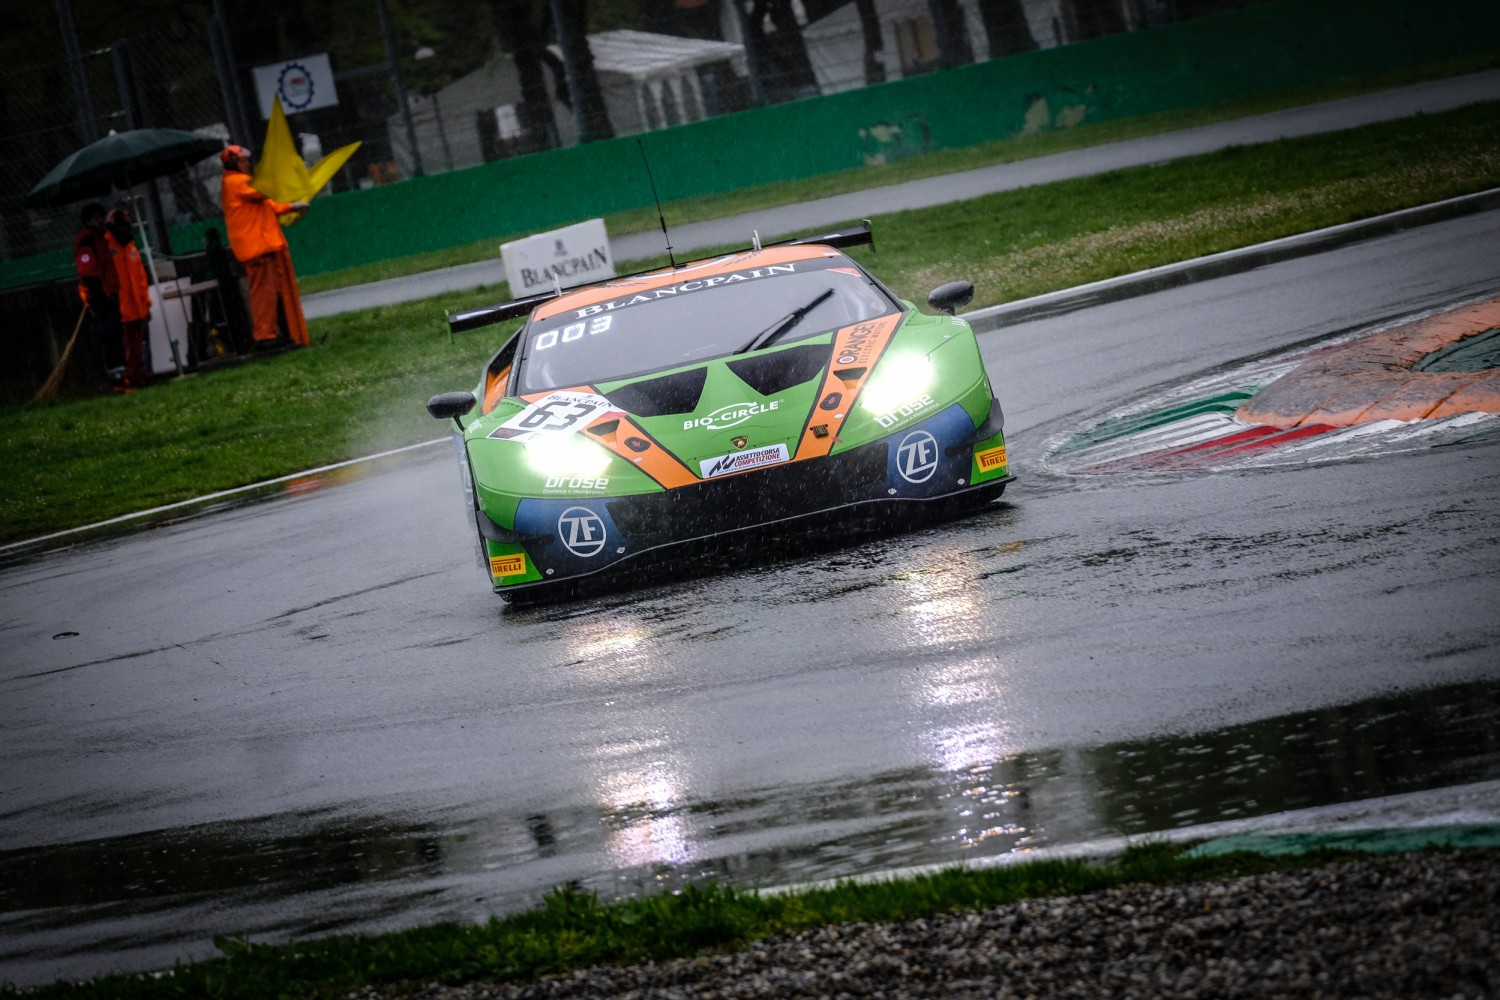 Grasser-Lamborghini emerges from rain-hit qualifying to bag pole position at Monza